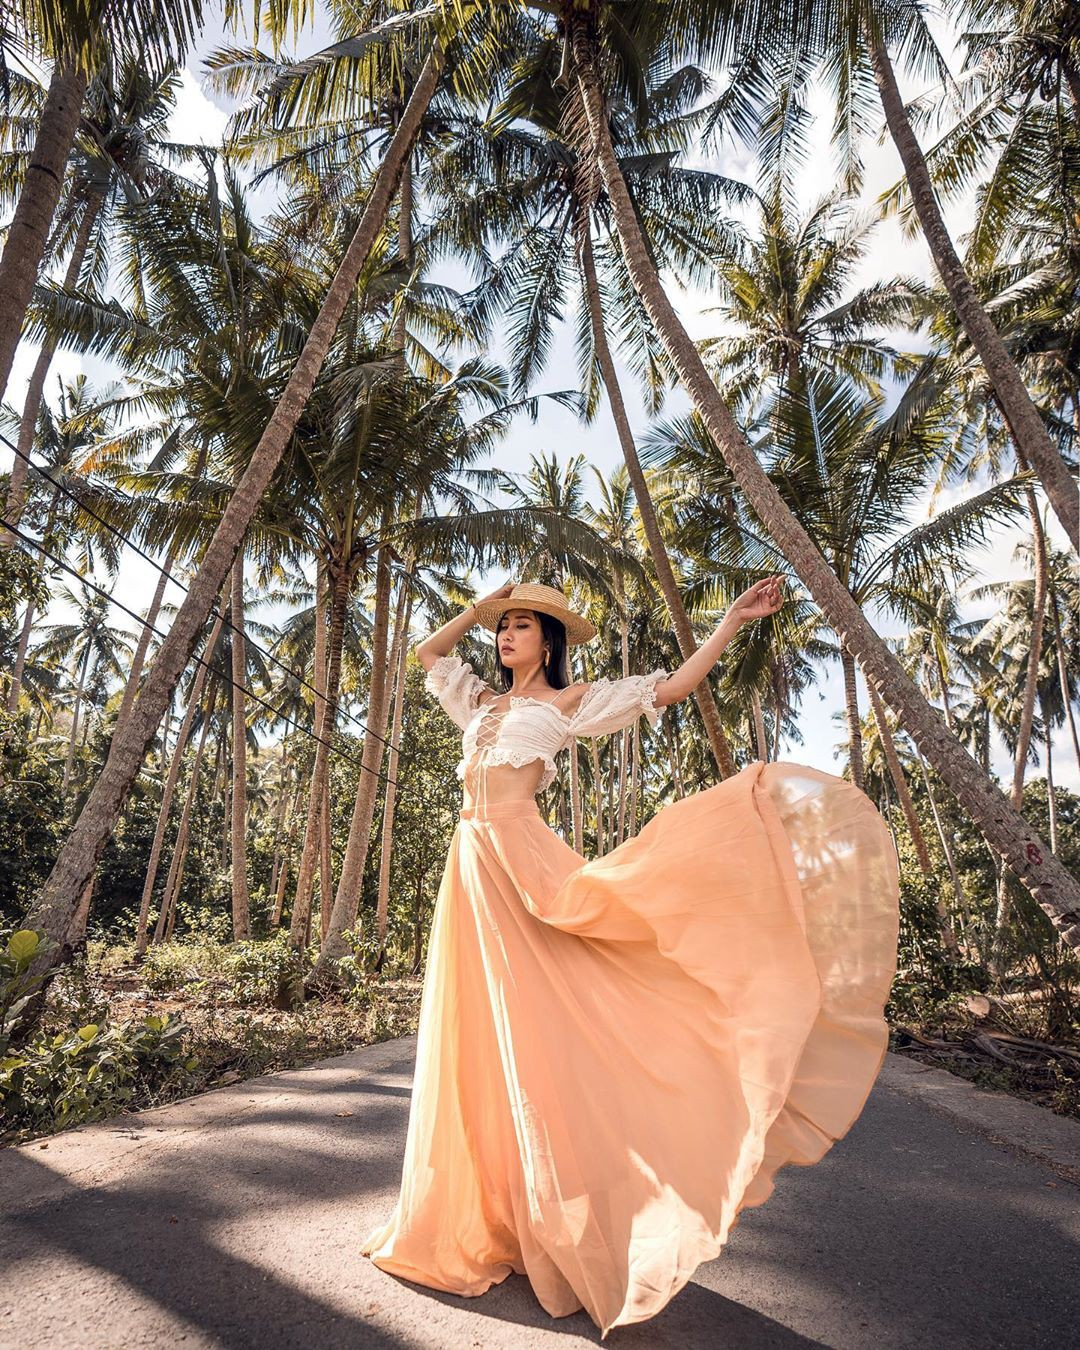 ghen-ty-cuoc-song-sang-chanh-cua-blogger-tina-lee (1)